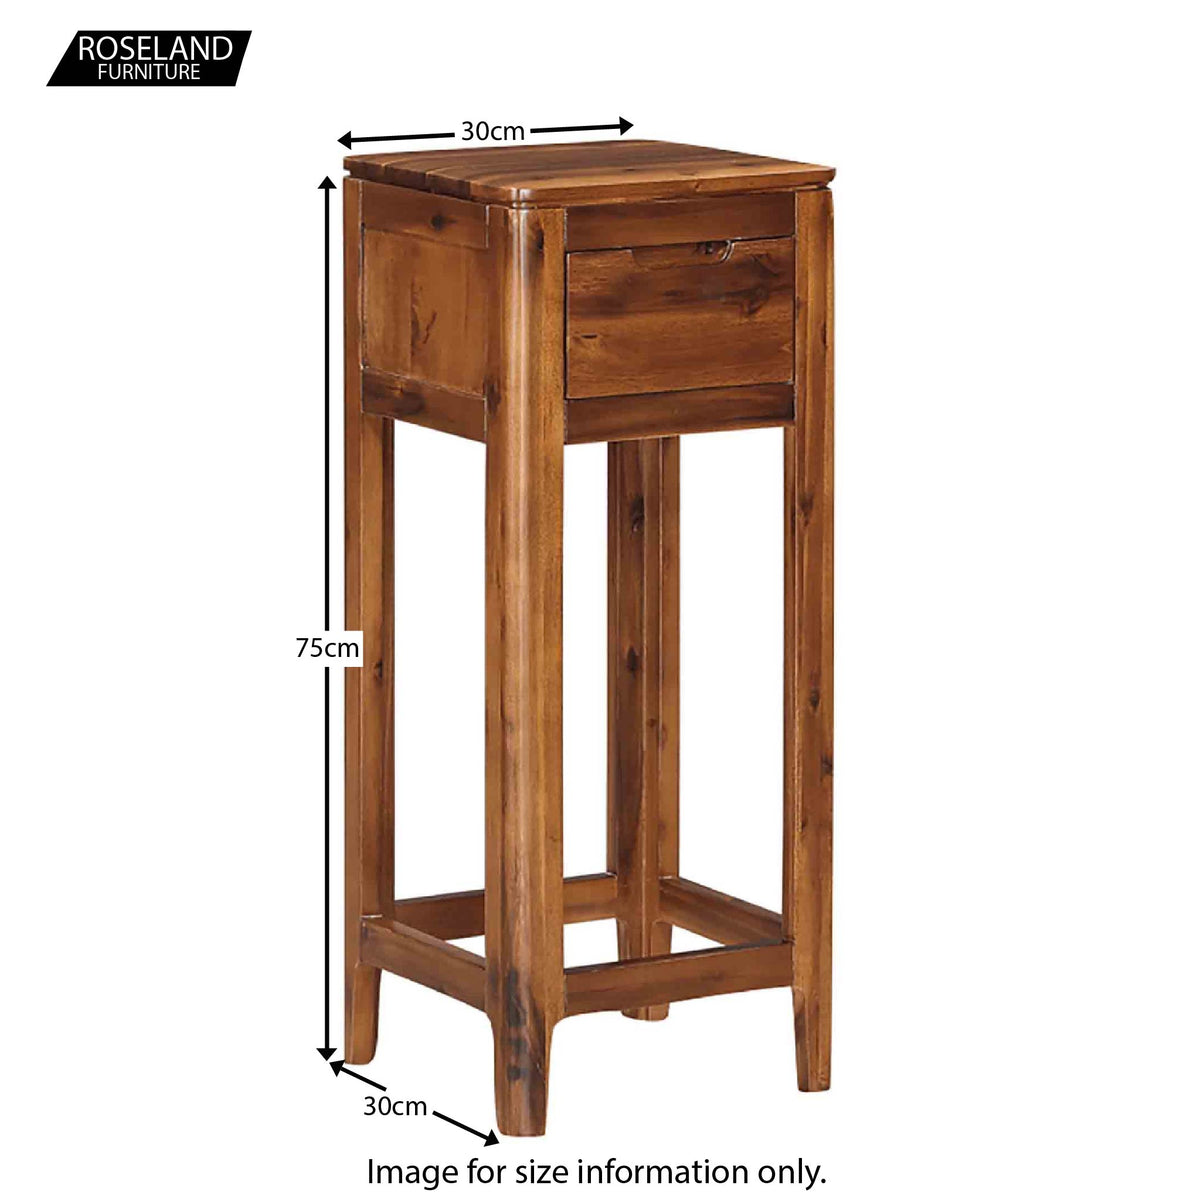 Dunmore Acacia Dark Wood Hallway Telephone Stand - Size Guide